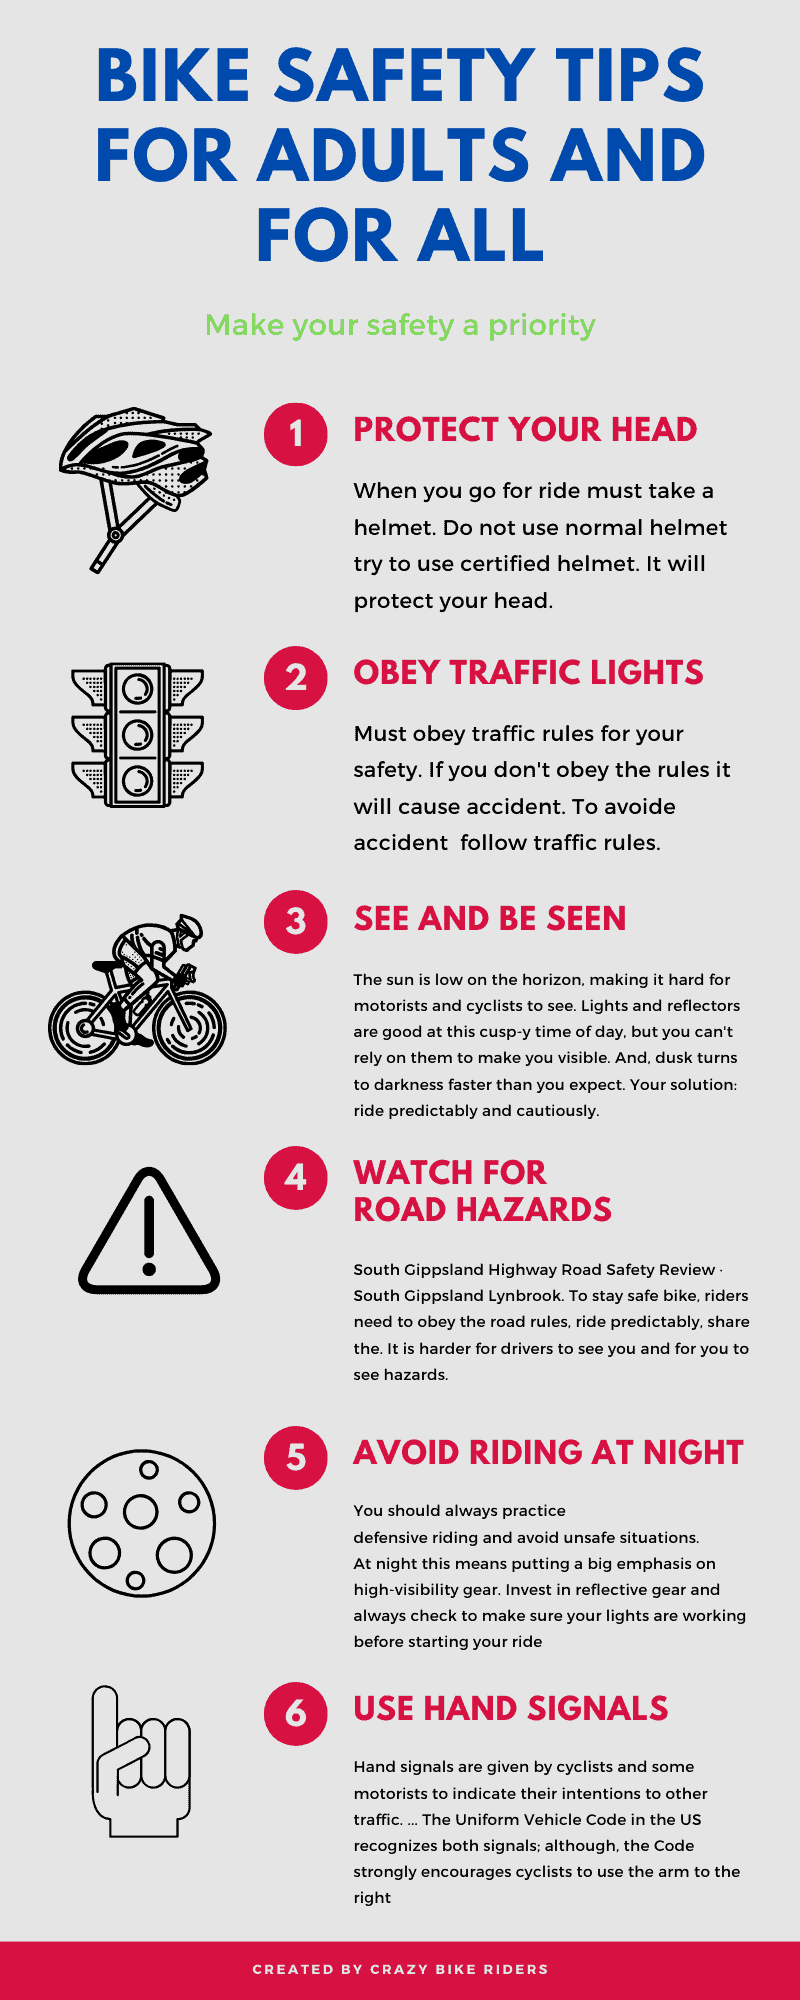 Bike safety tips for adults